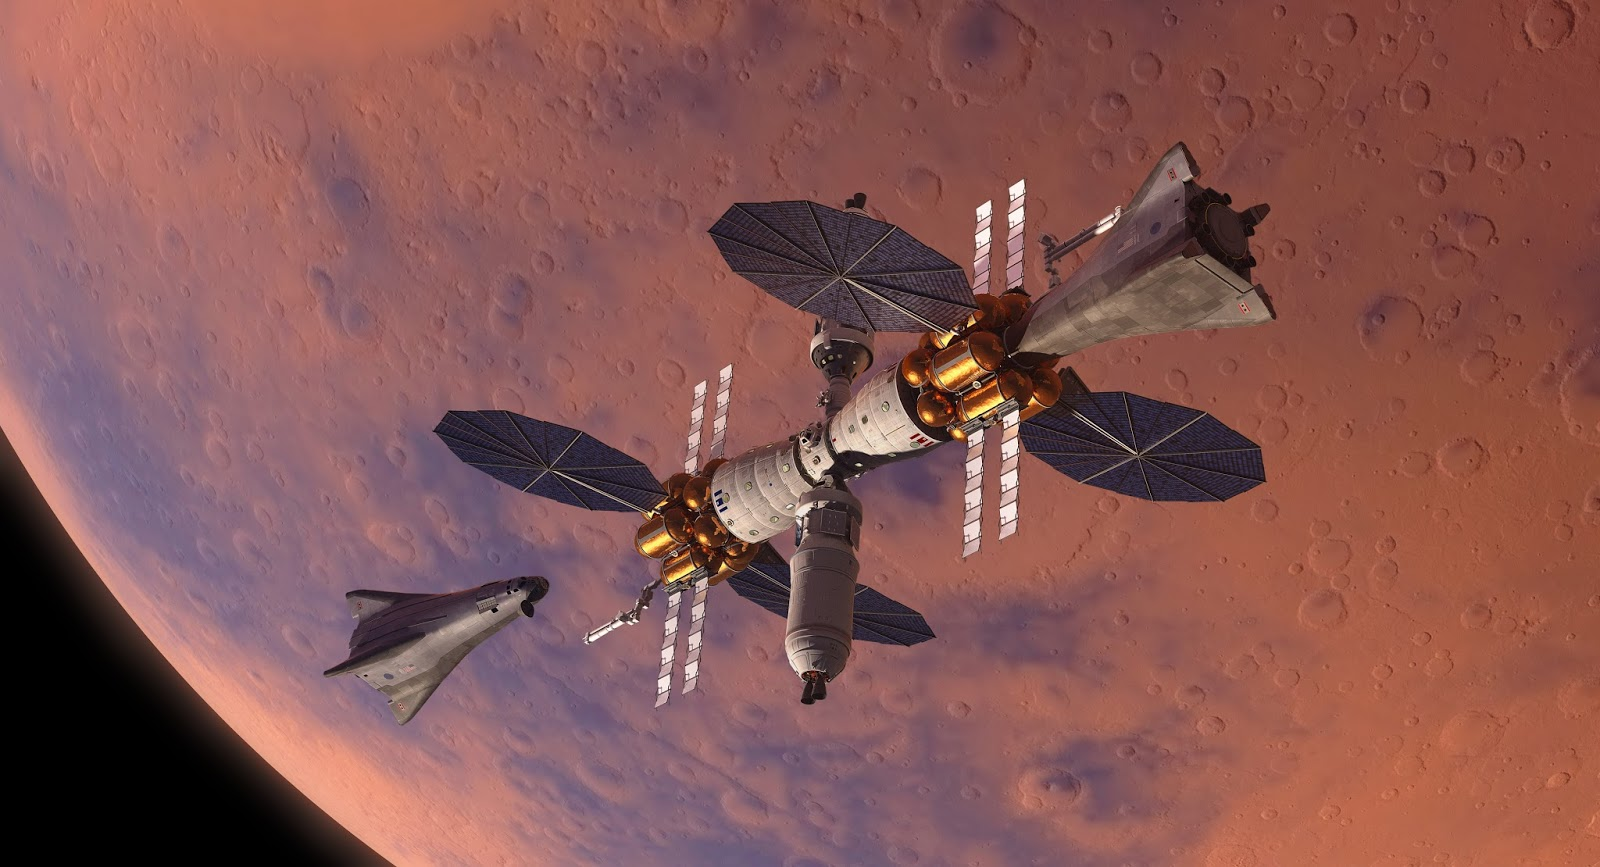 Lockheed Martin Mars lander docked with Mars Base Camp